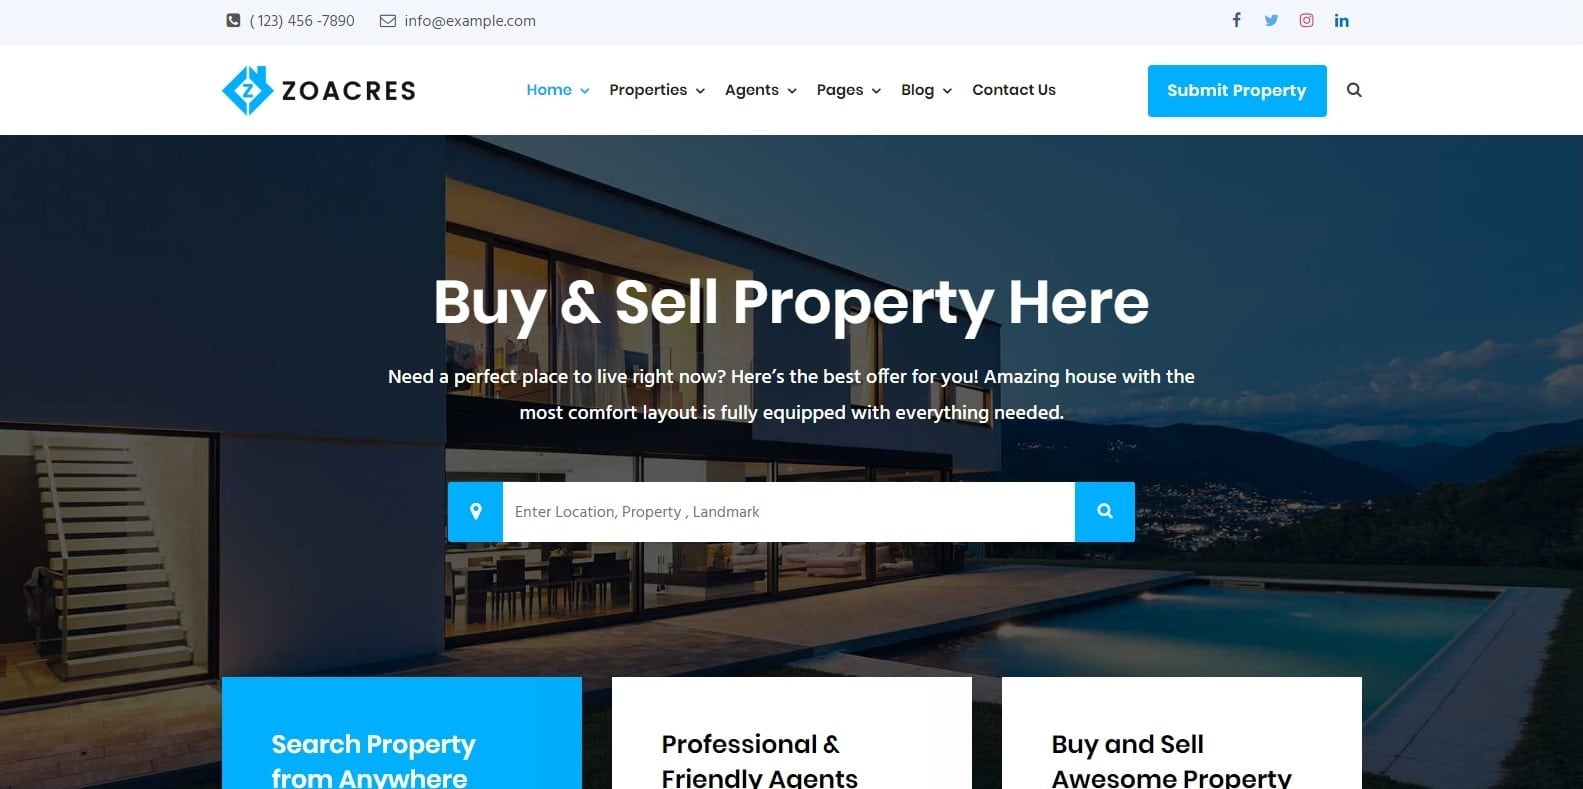 zoacres-property-management-wordpress-website-template